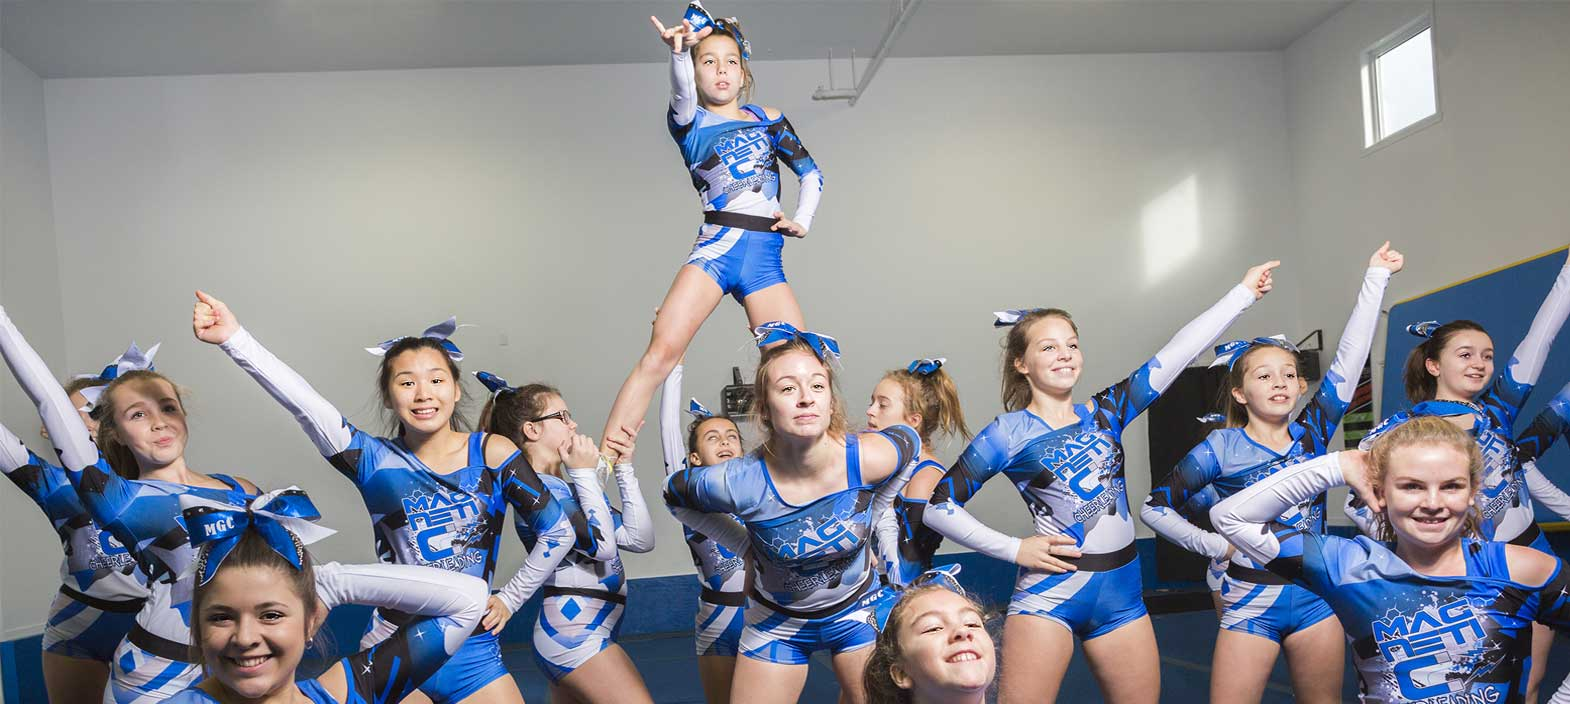 CheerCool - Cheerleading Equipment Mats and Accessories